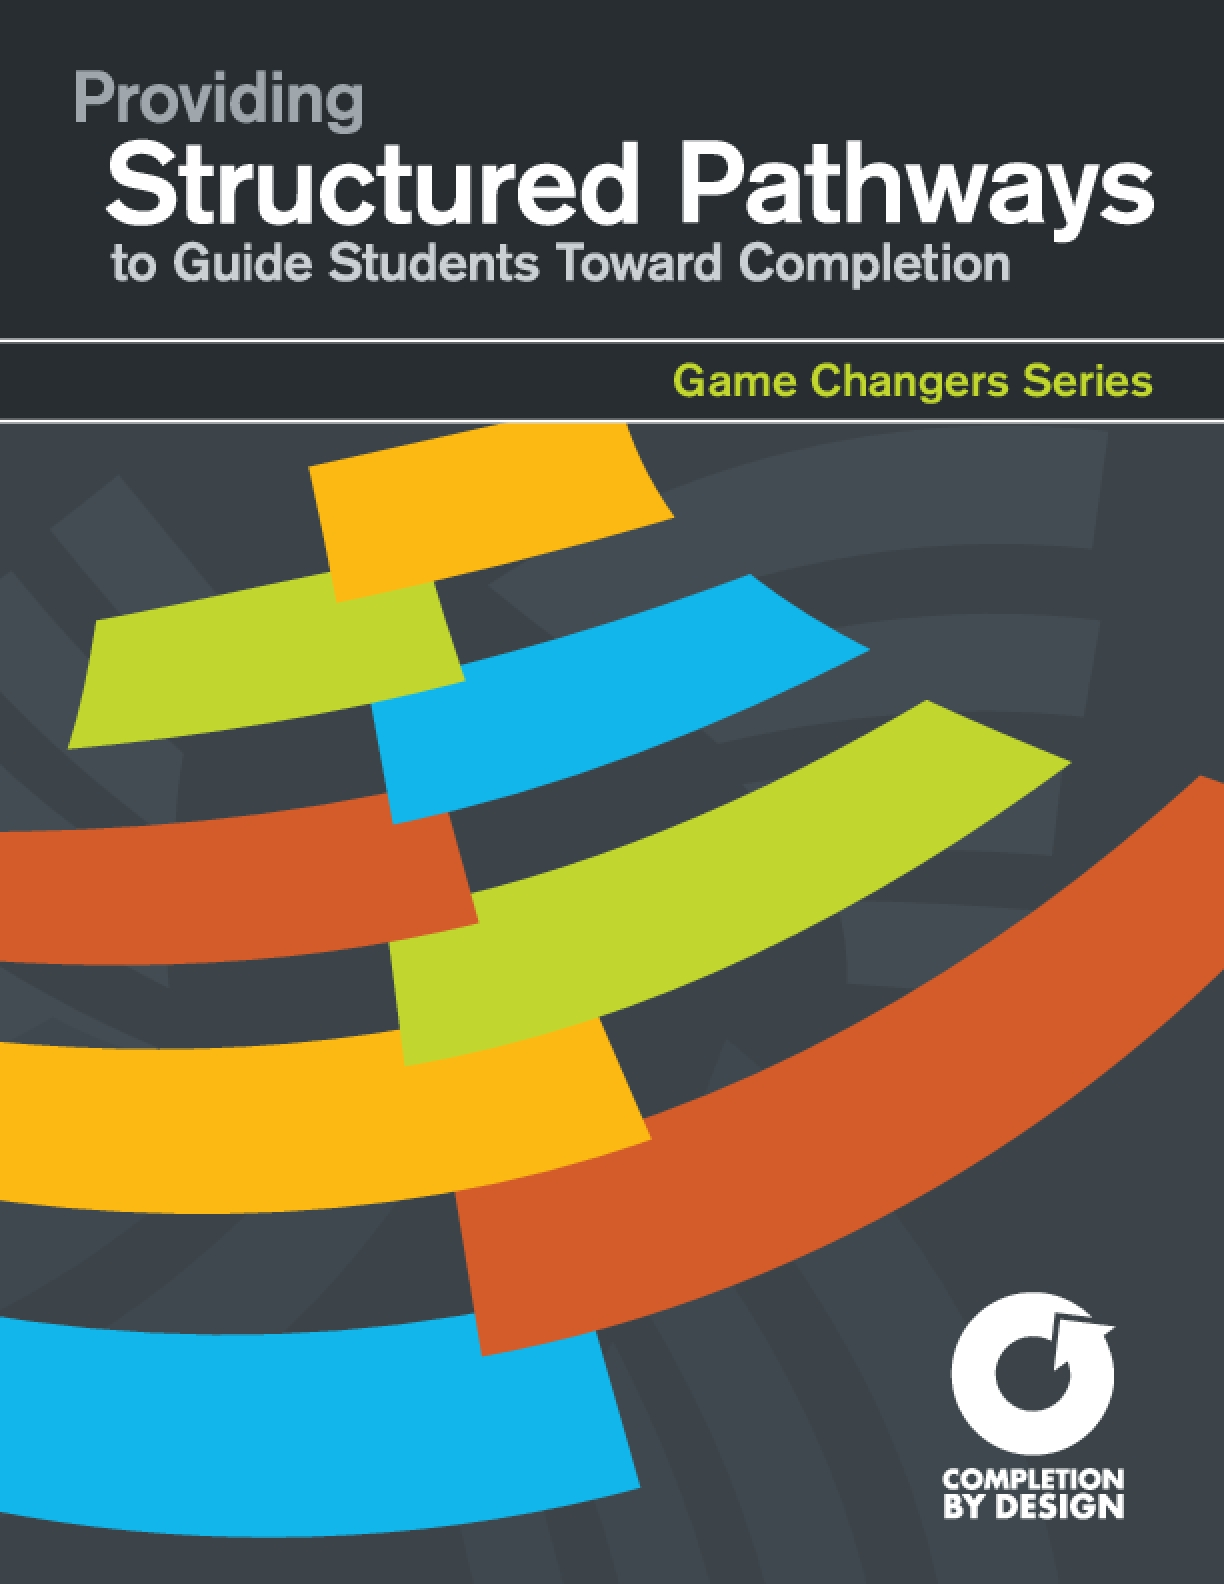 Providing Structured Pathways to Guide Students Toward Completion: Game Changers Series